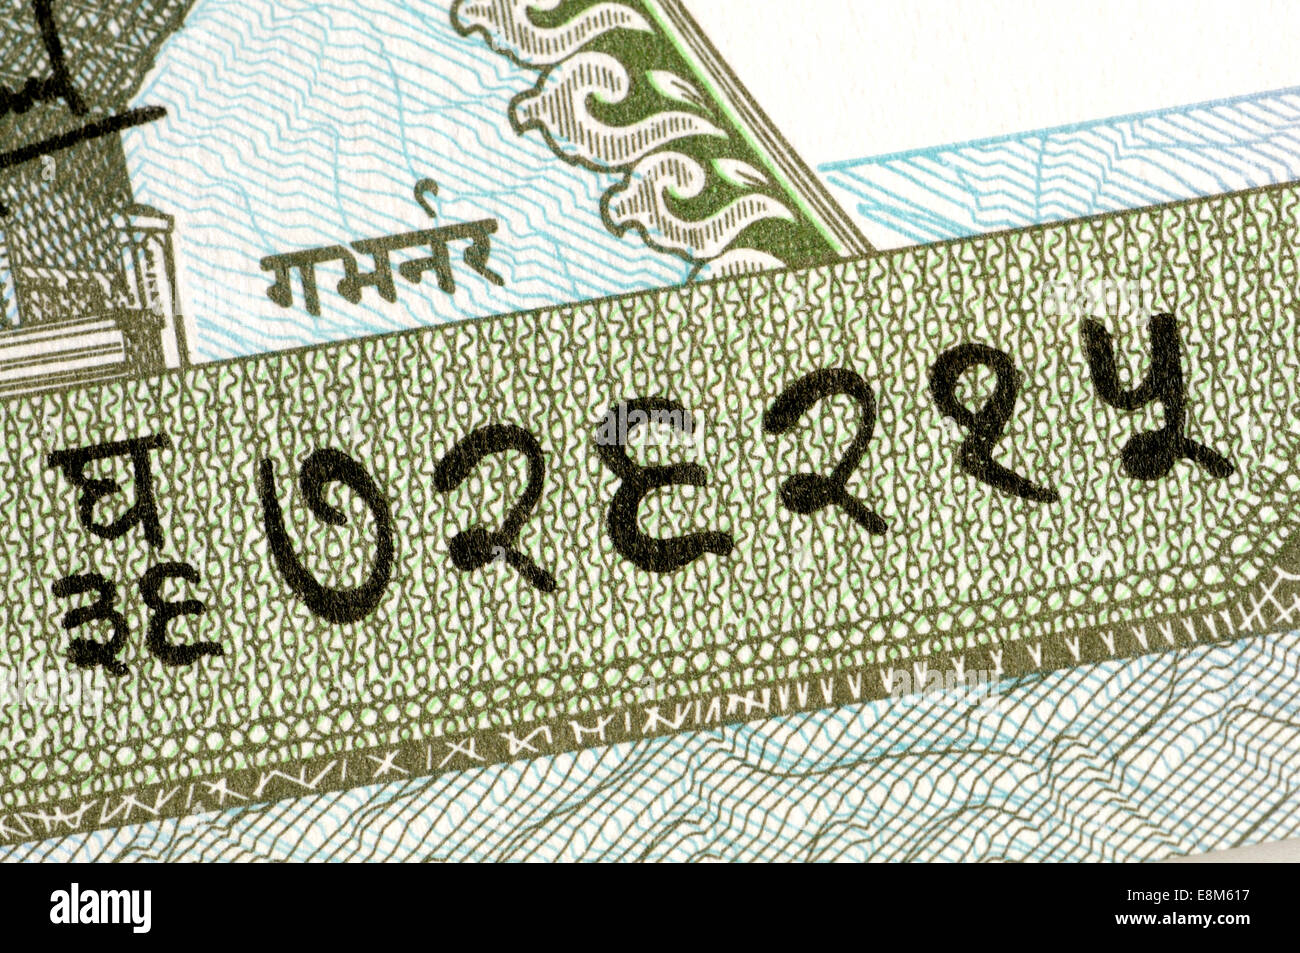 Detail from a Nepalese banknote showing the serial number in Nepali numerals  (726215) - Stock Image